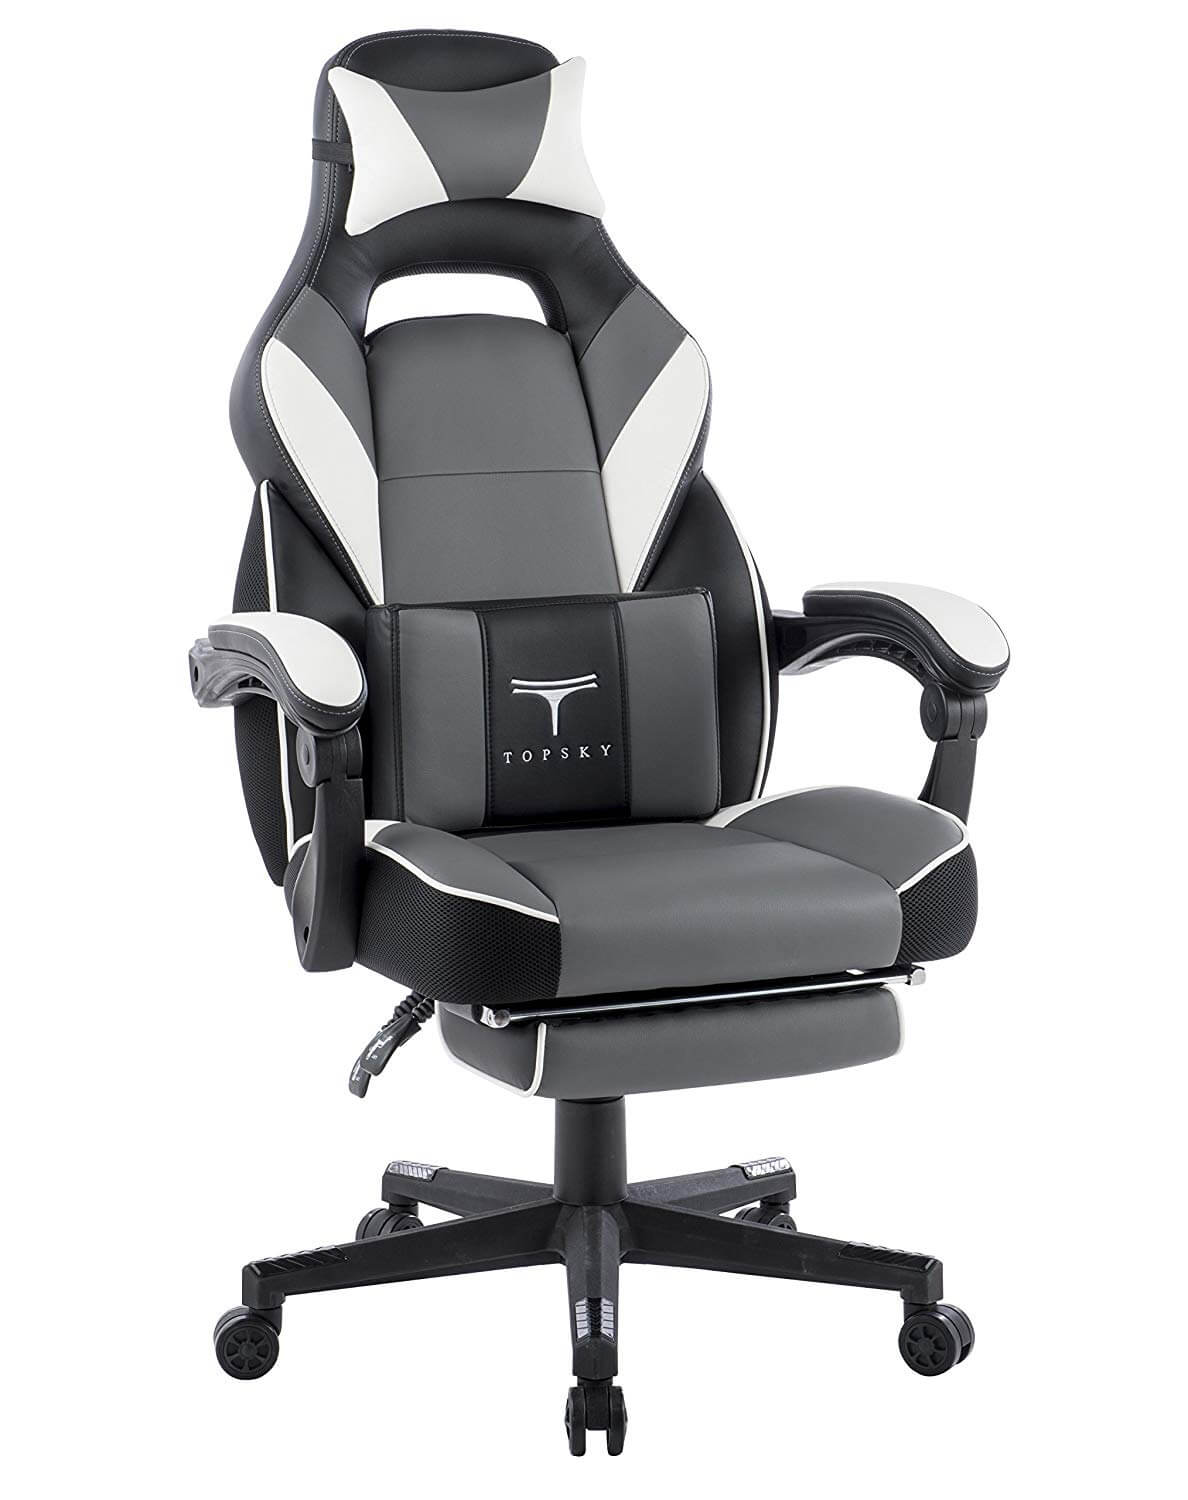 TOPSKY Chair For Gamers Review UltimateGameChair